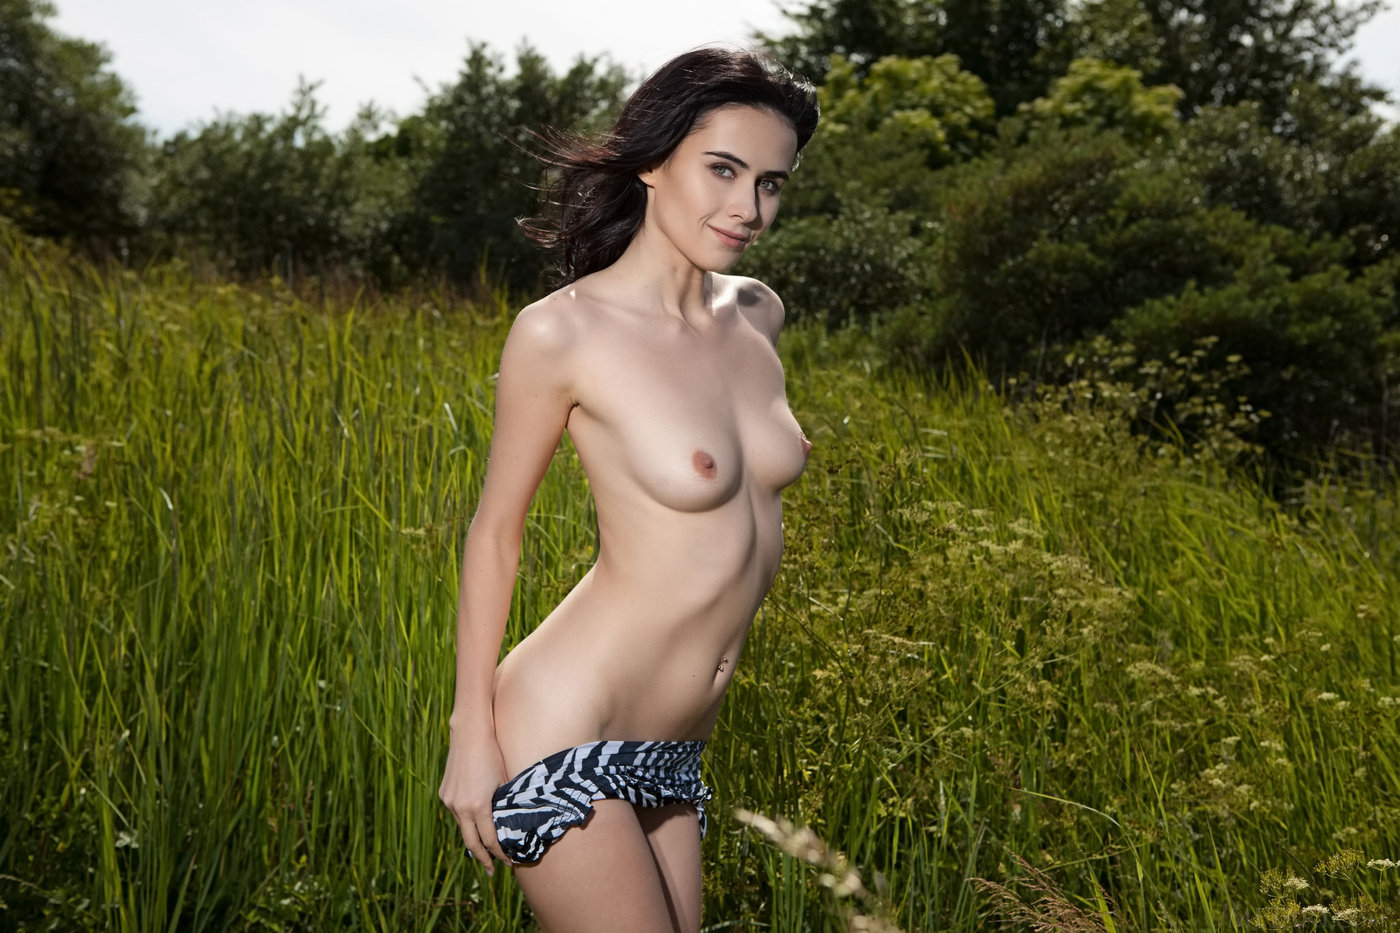 Leggy brunette with perky tits showing off her great body in a field